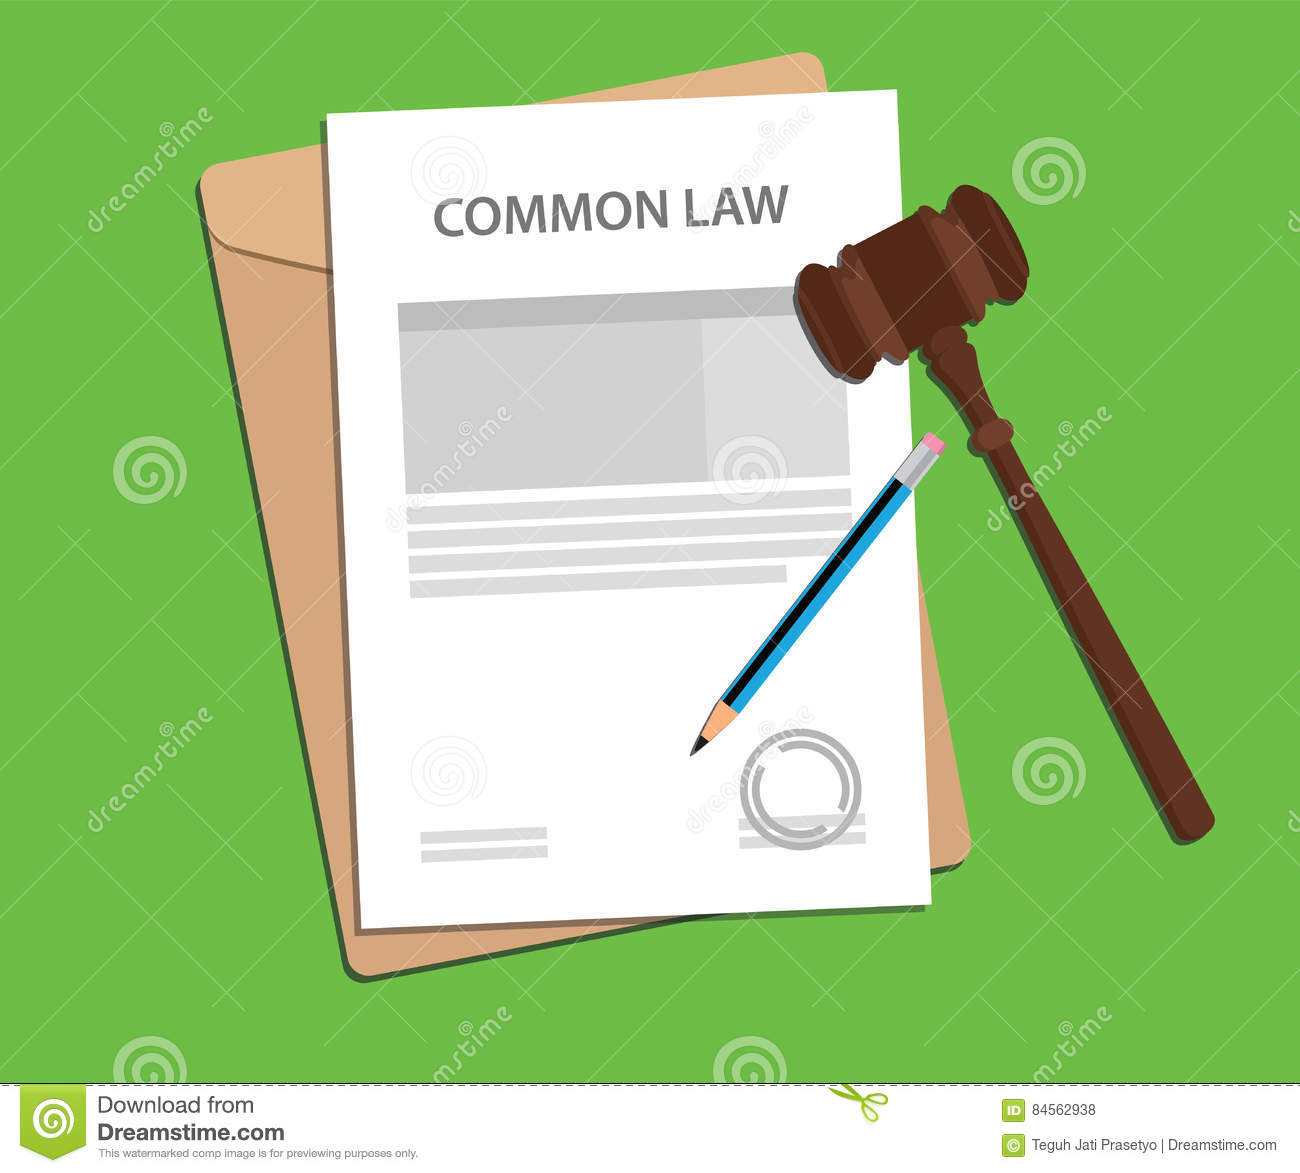 hight resolution of common law concept illustration with gavel and pencil